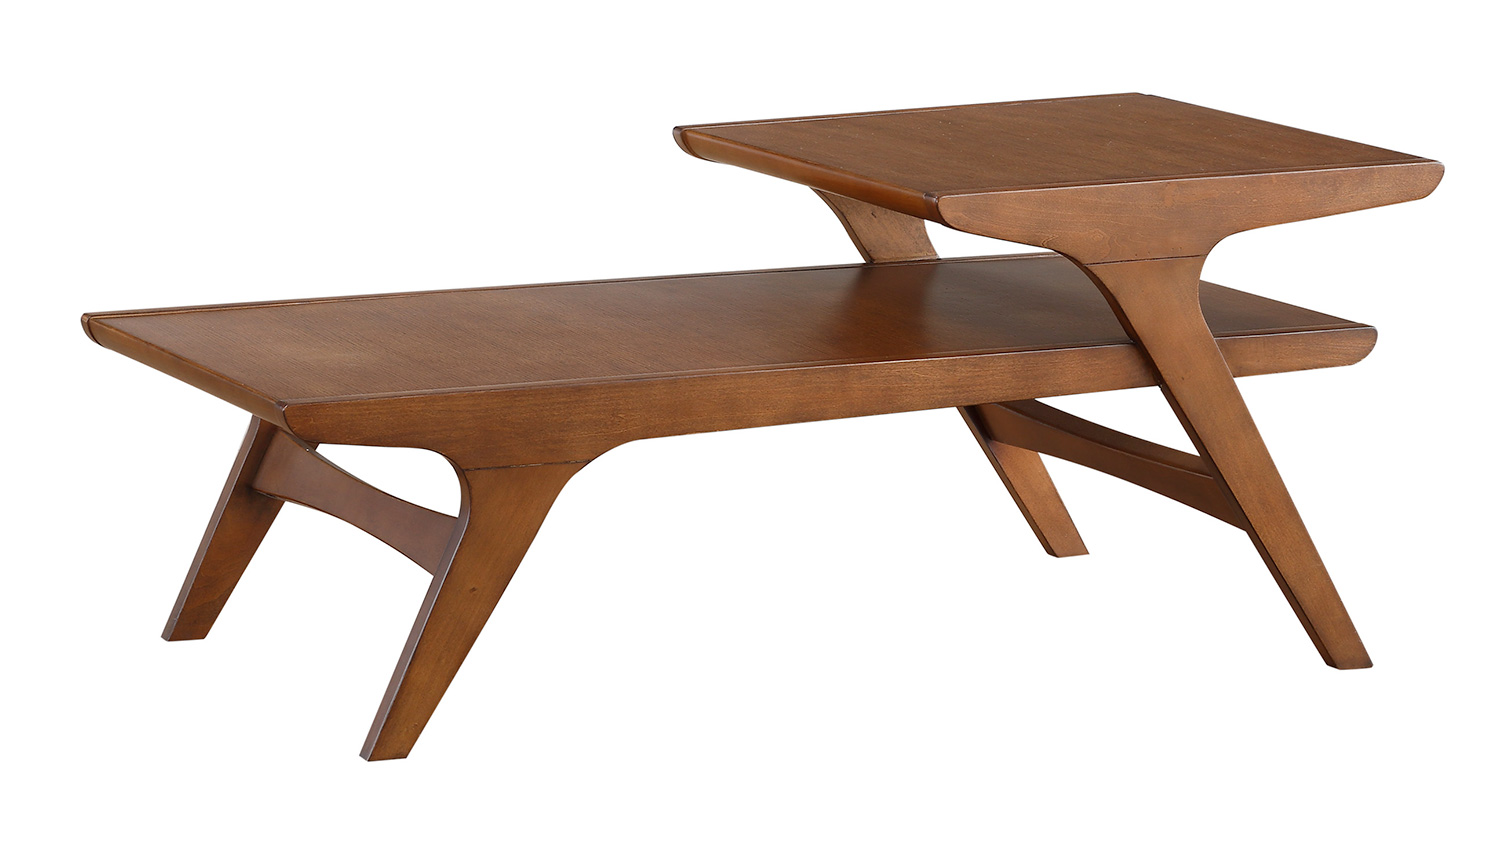 Homelegance Saluki Cocktail/Coffee Table - Cherry